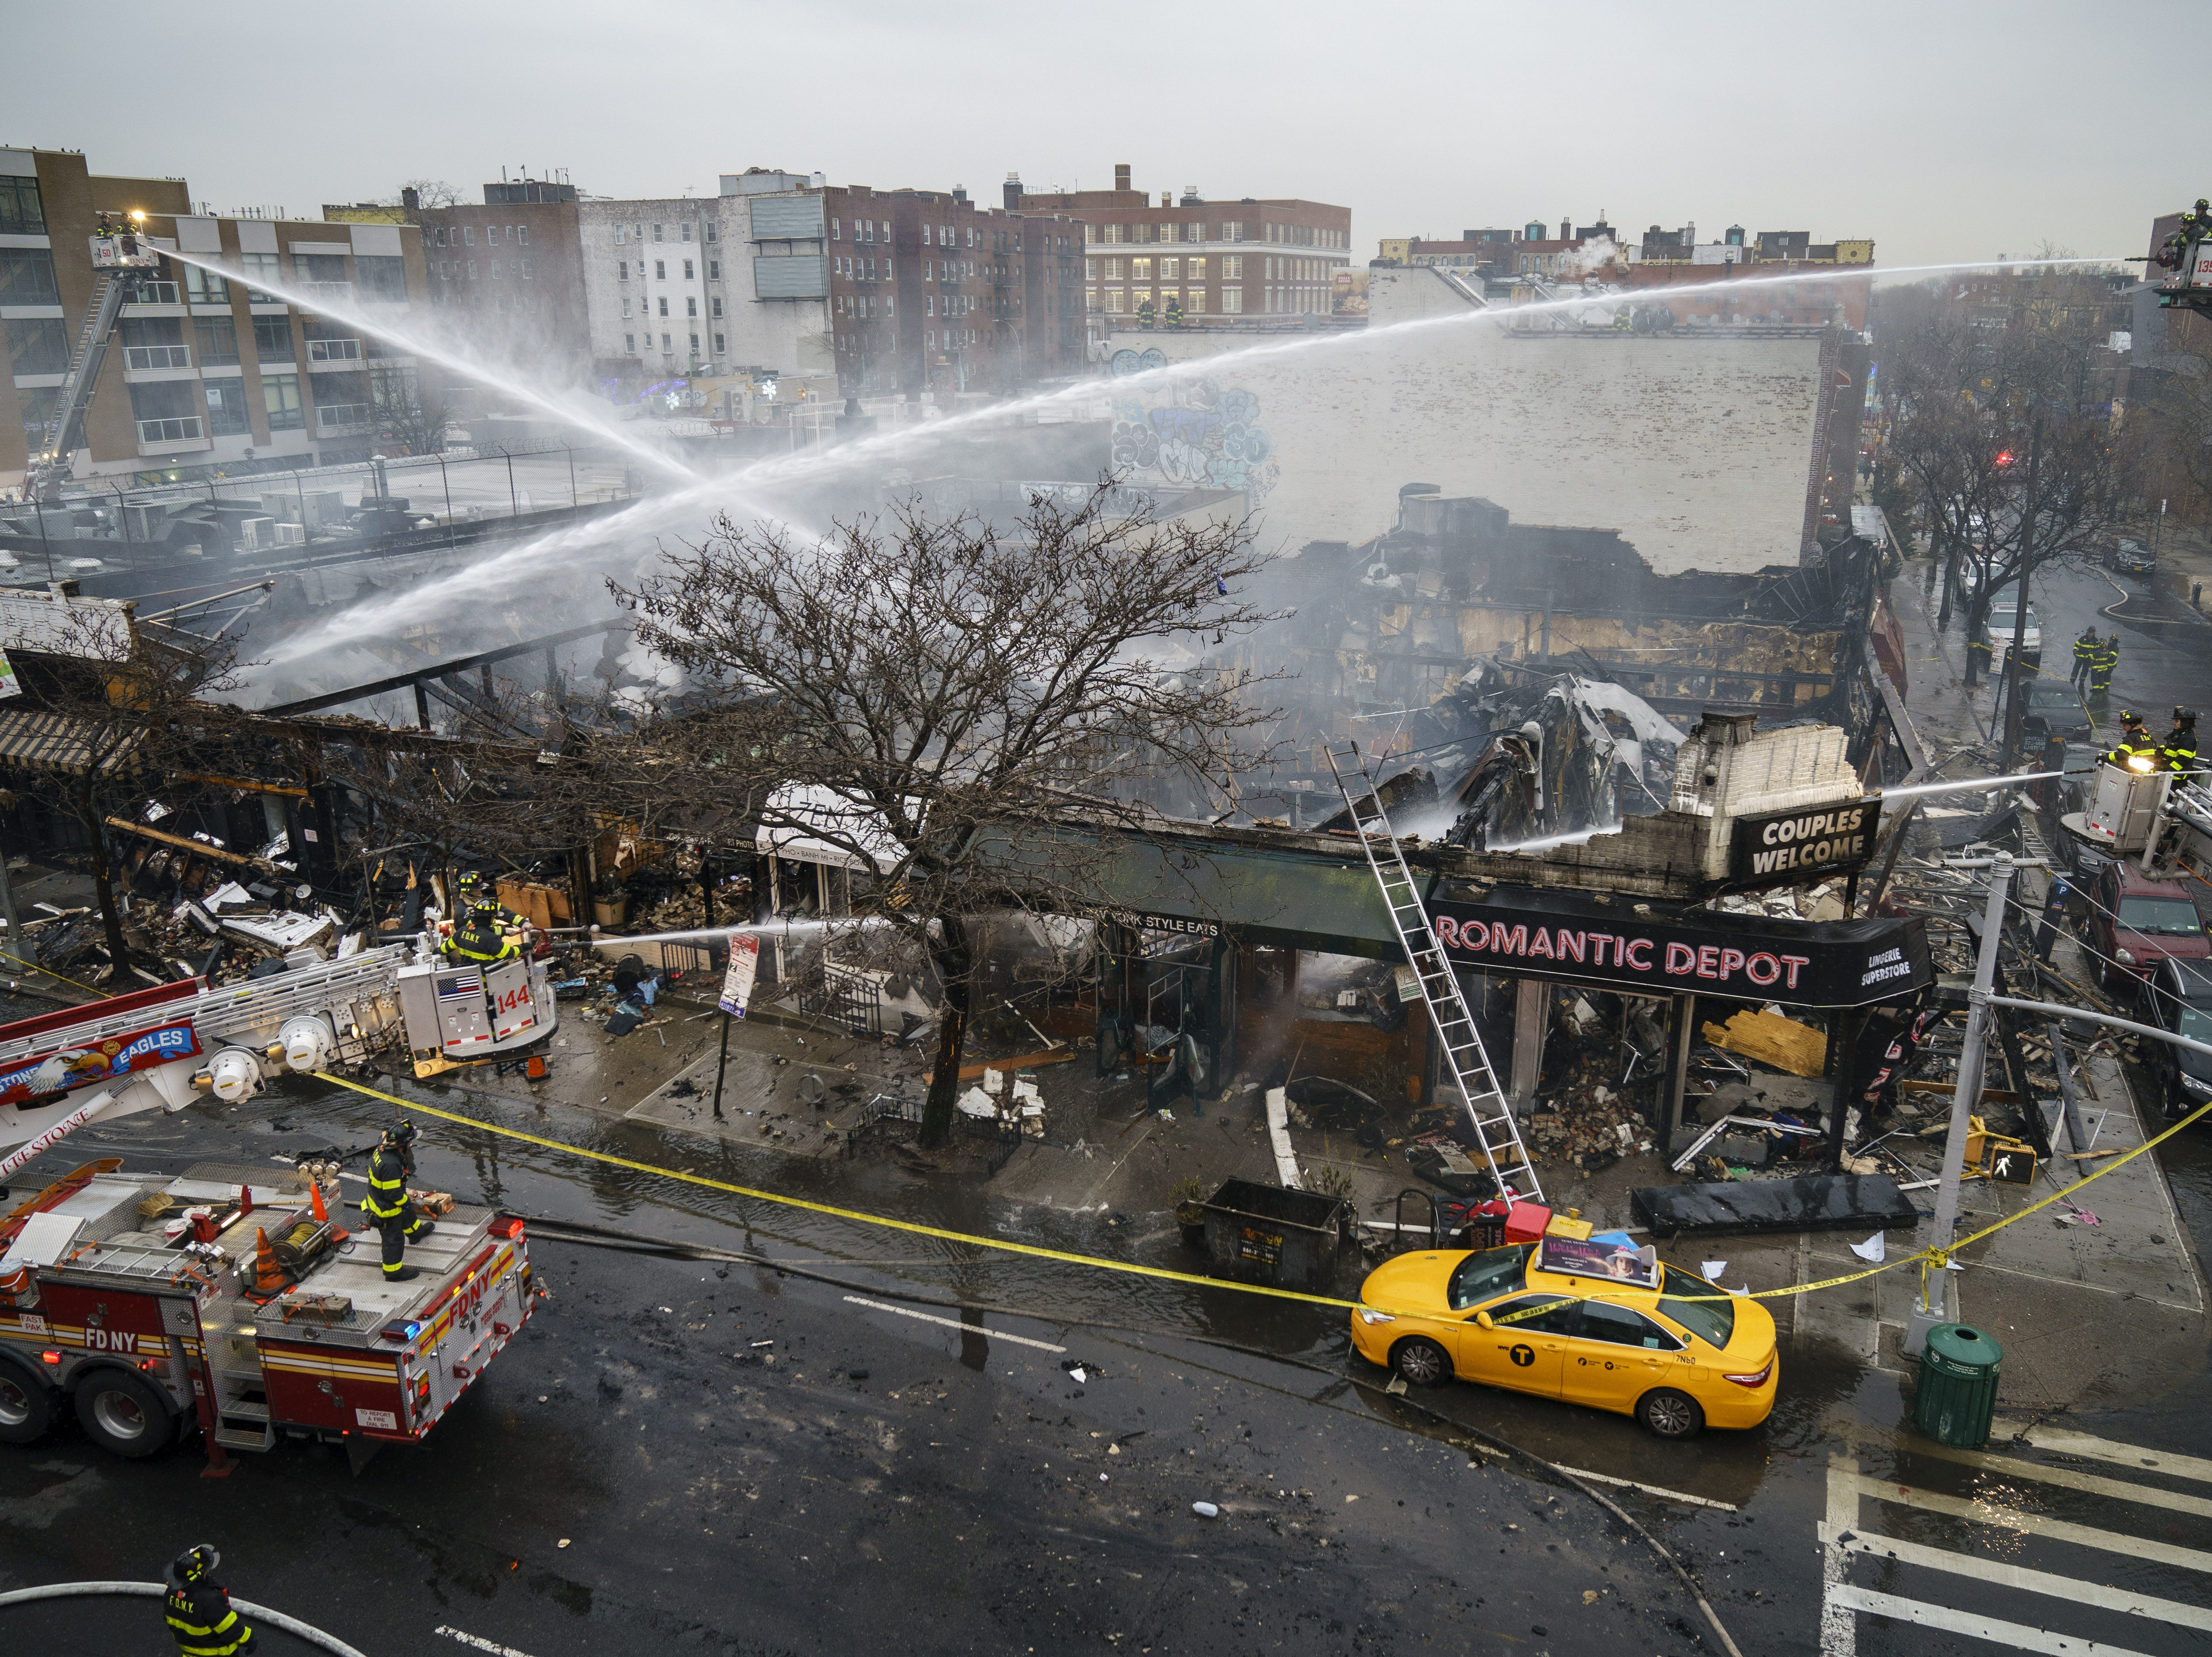 Dec. 13, 2018: Firefighters work to put out the smoldering remains of an overnight fire that engulfed six businesses on Queens Boulevard in the Queens borough of New York City. A dozen people were injured in the fire, including six firefighters.